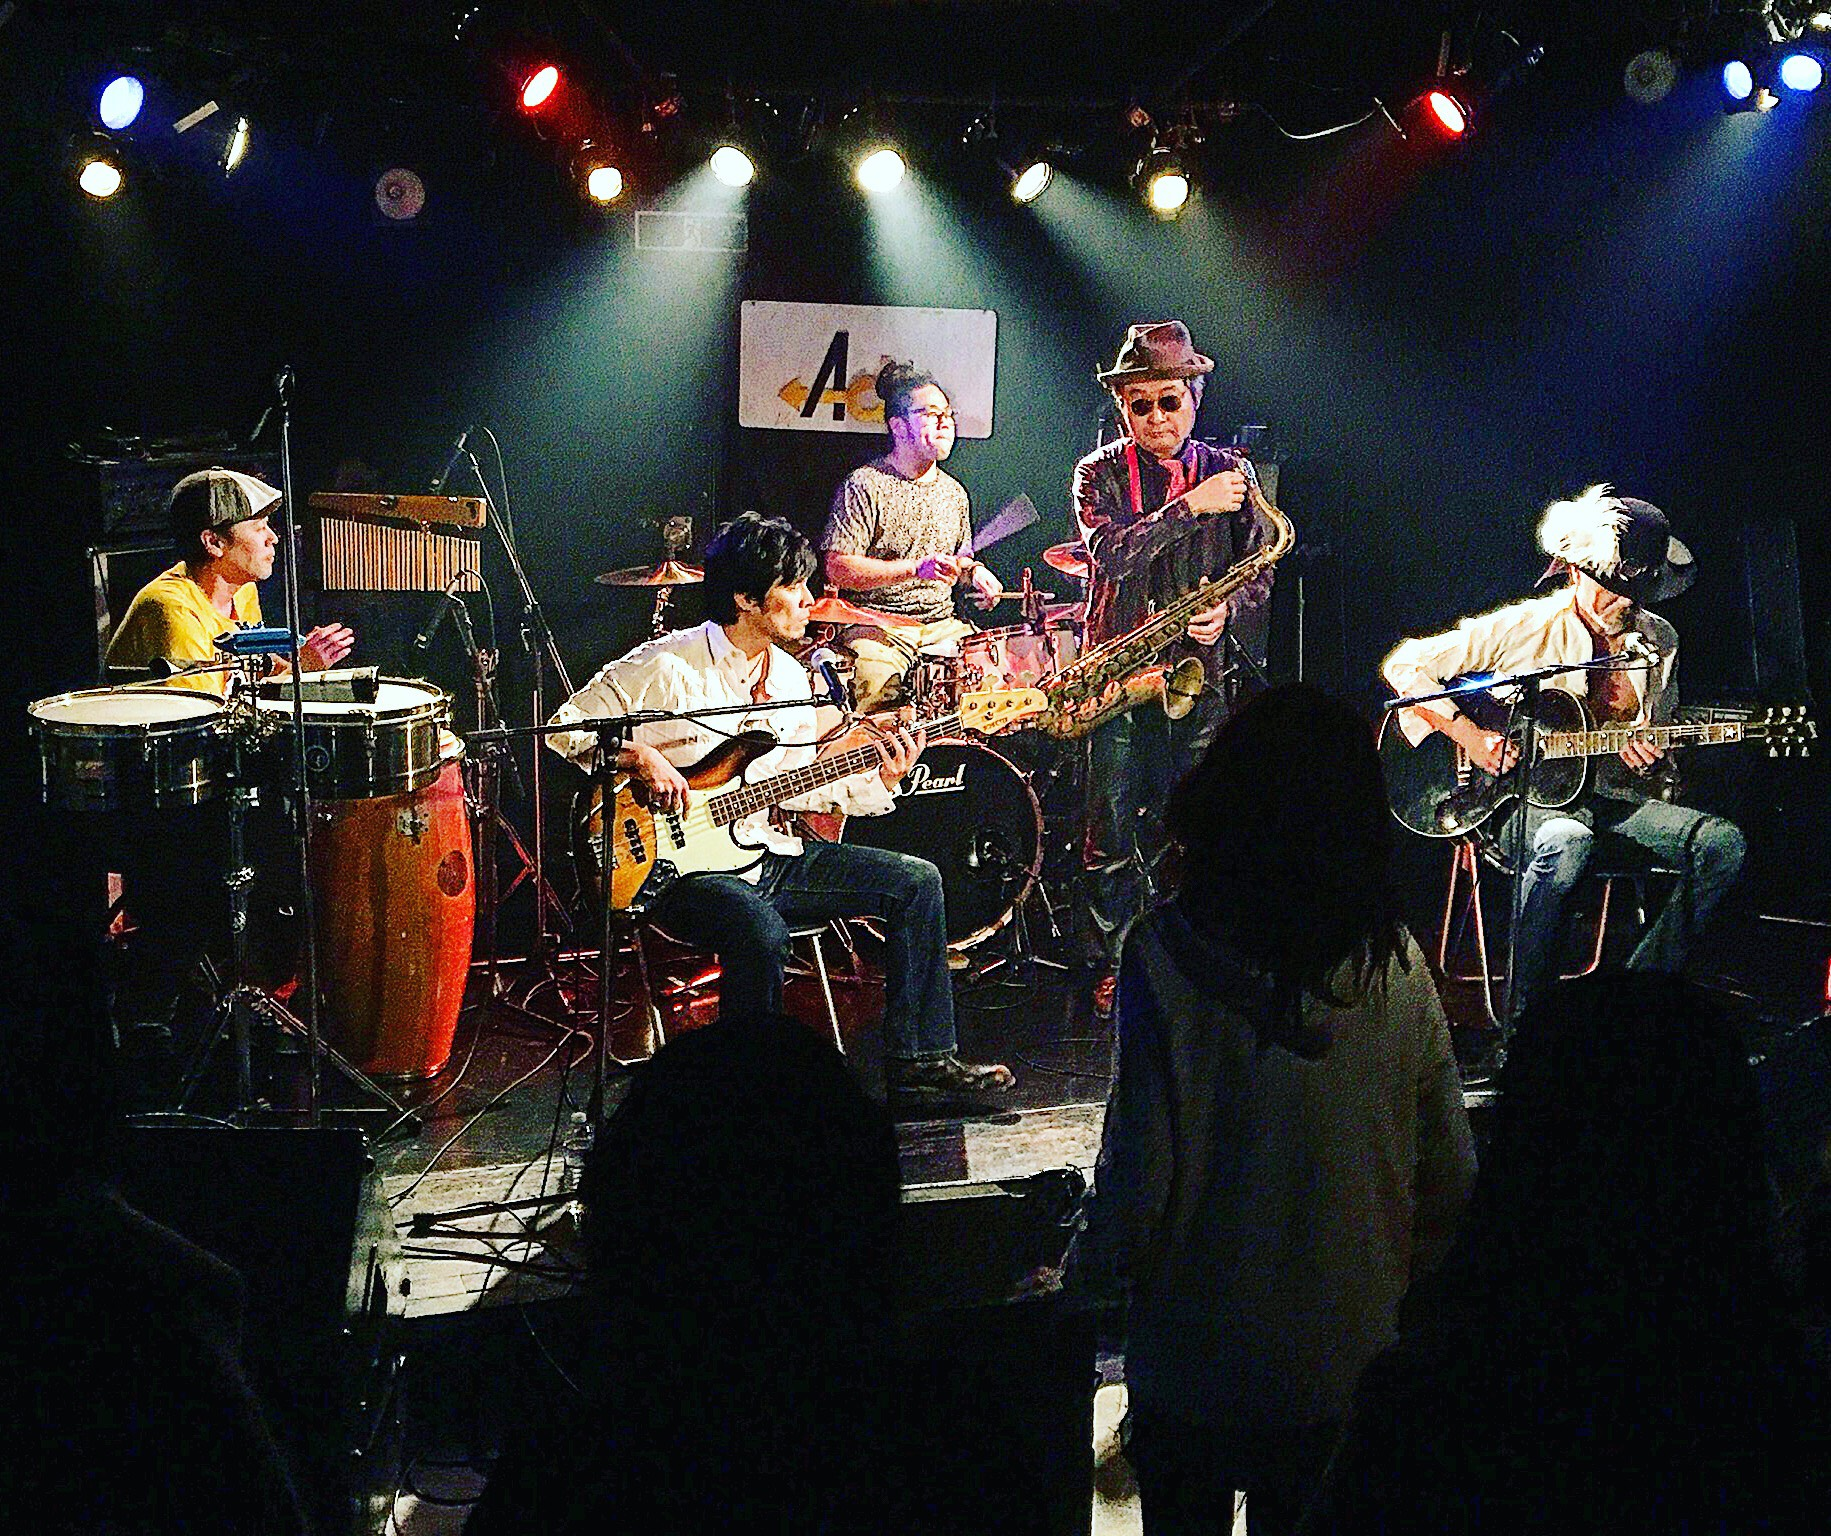 Gold Sounds presents『Asakusa JAM』